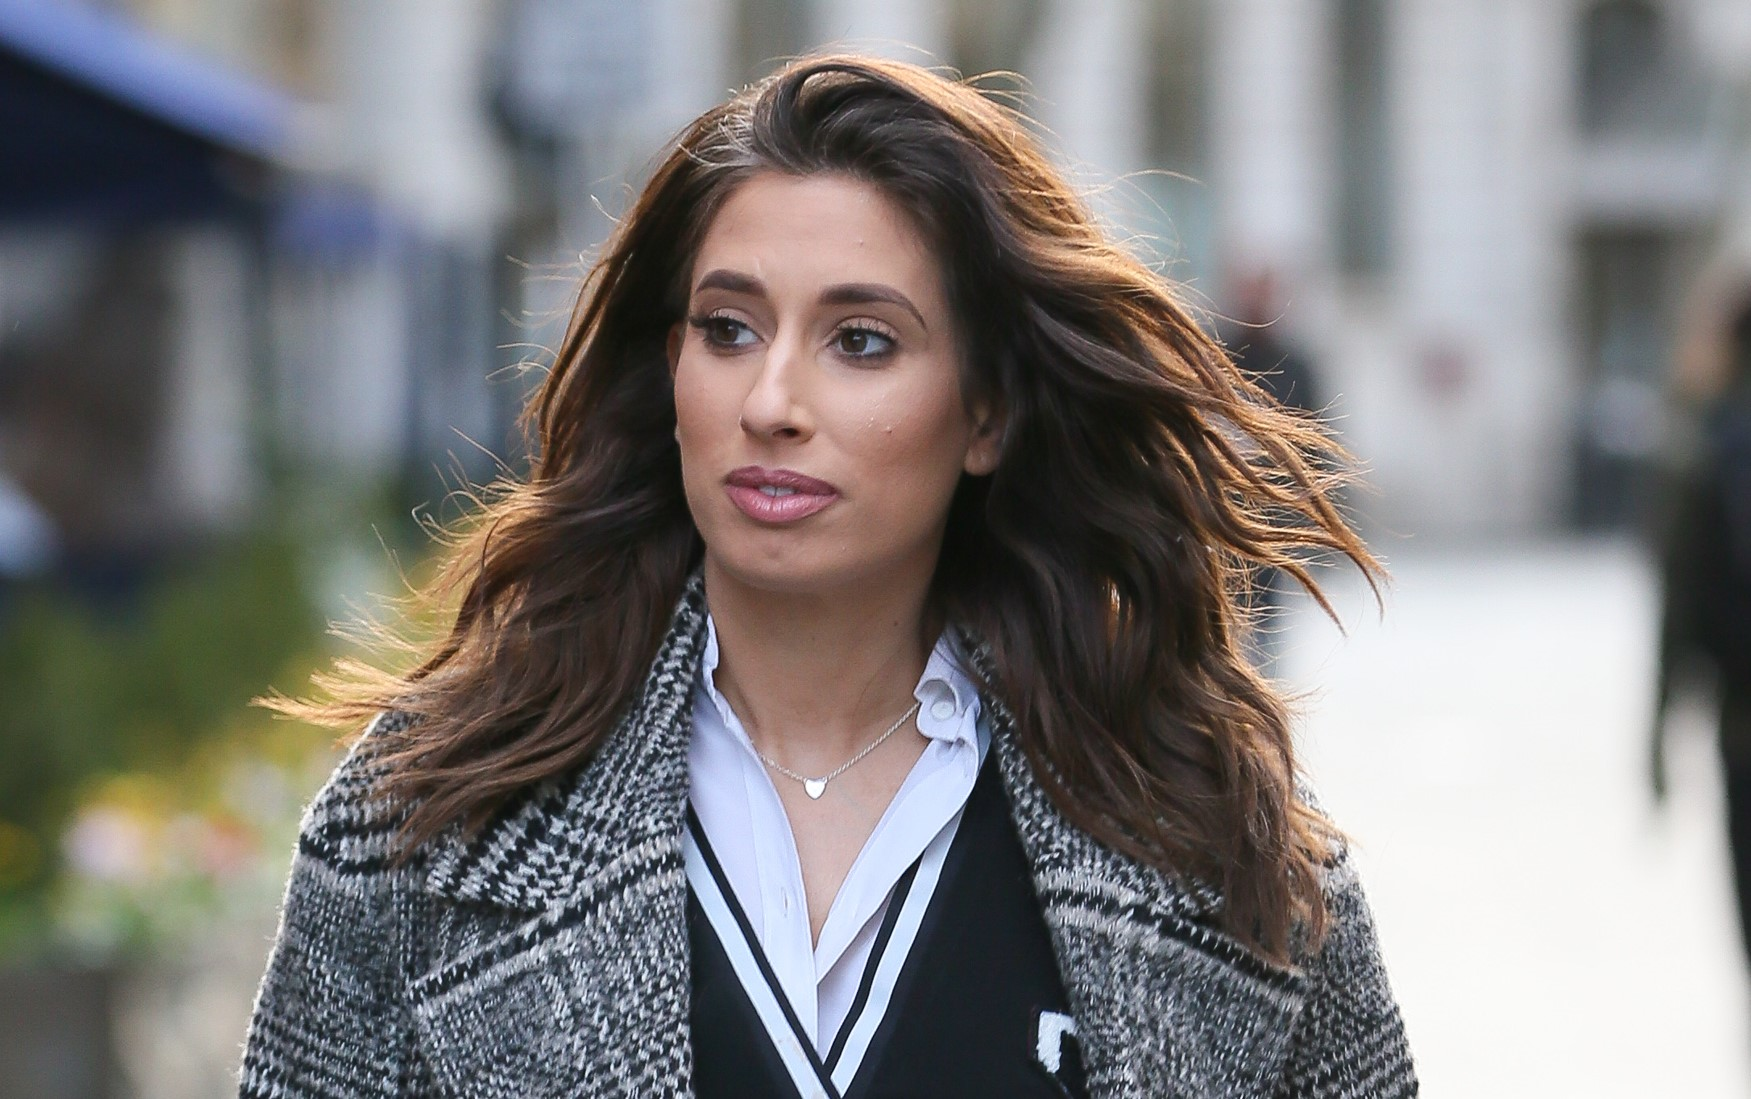 Stacey Solomon confesses to major 'parenting fail'